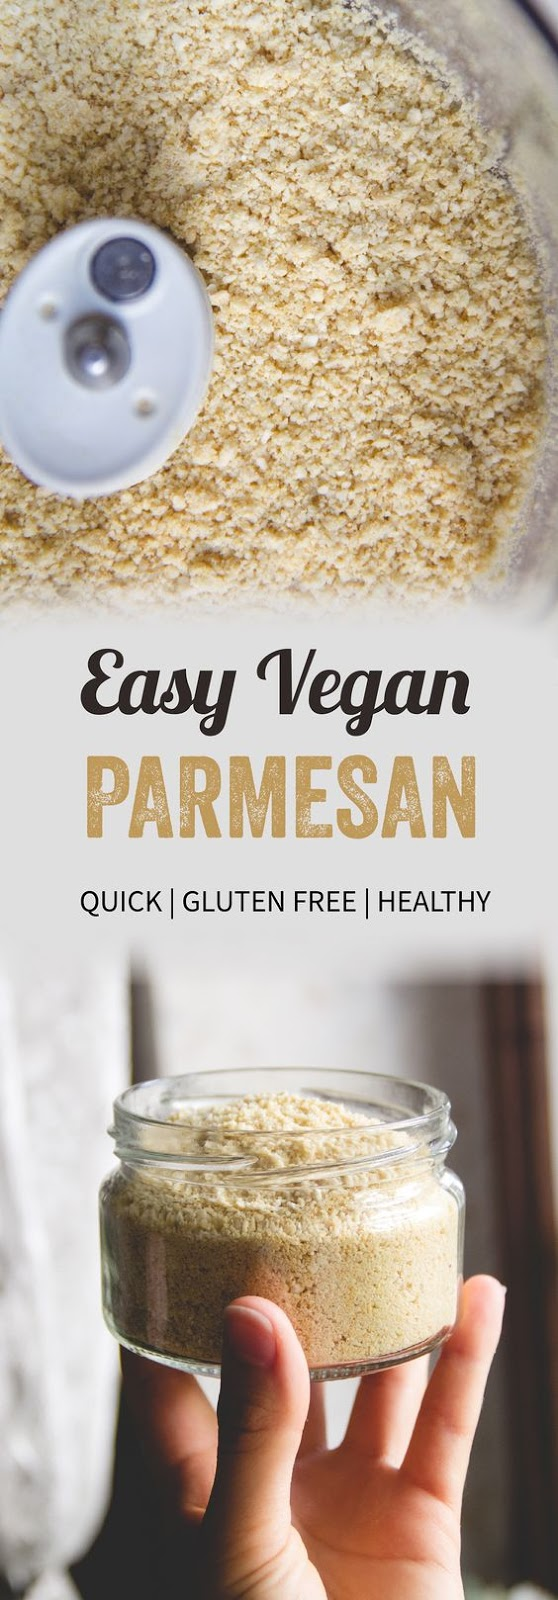 Discover how to make easy 4-ingredient vegan Parmesan cheese that tastes like real cheese! Great on toasts, salads, soups, stews and more.